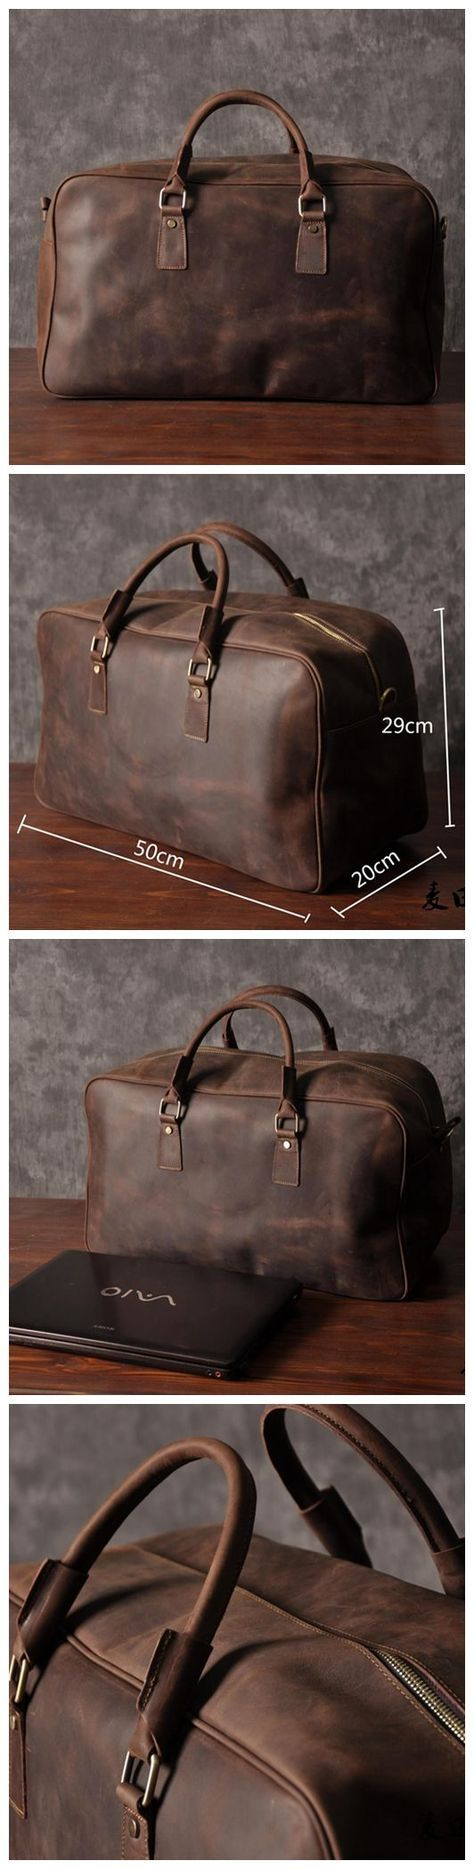 HANDCRAFTED ANTIQUE STYLE REAL LEATHER TRAVEL BAG, DUFFLE BAG, HOLDALL LUGGAGE BAG, TRAVEL BAG, WEEKEND BAG, OVERNIGHT BAG,  GYM BAG